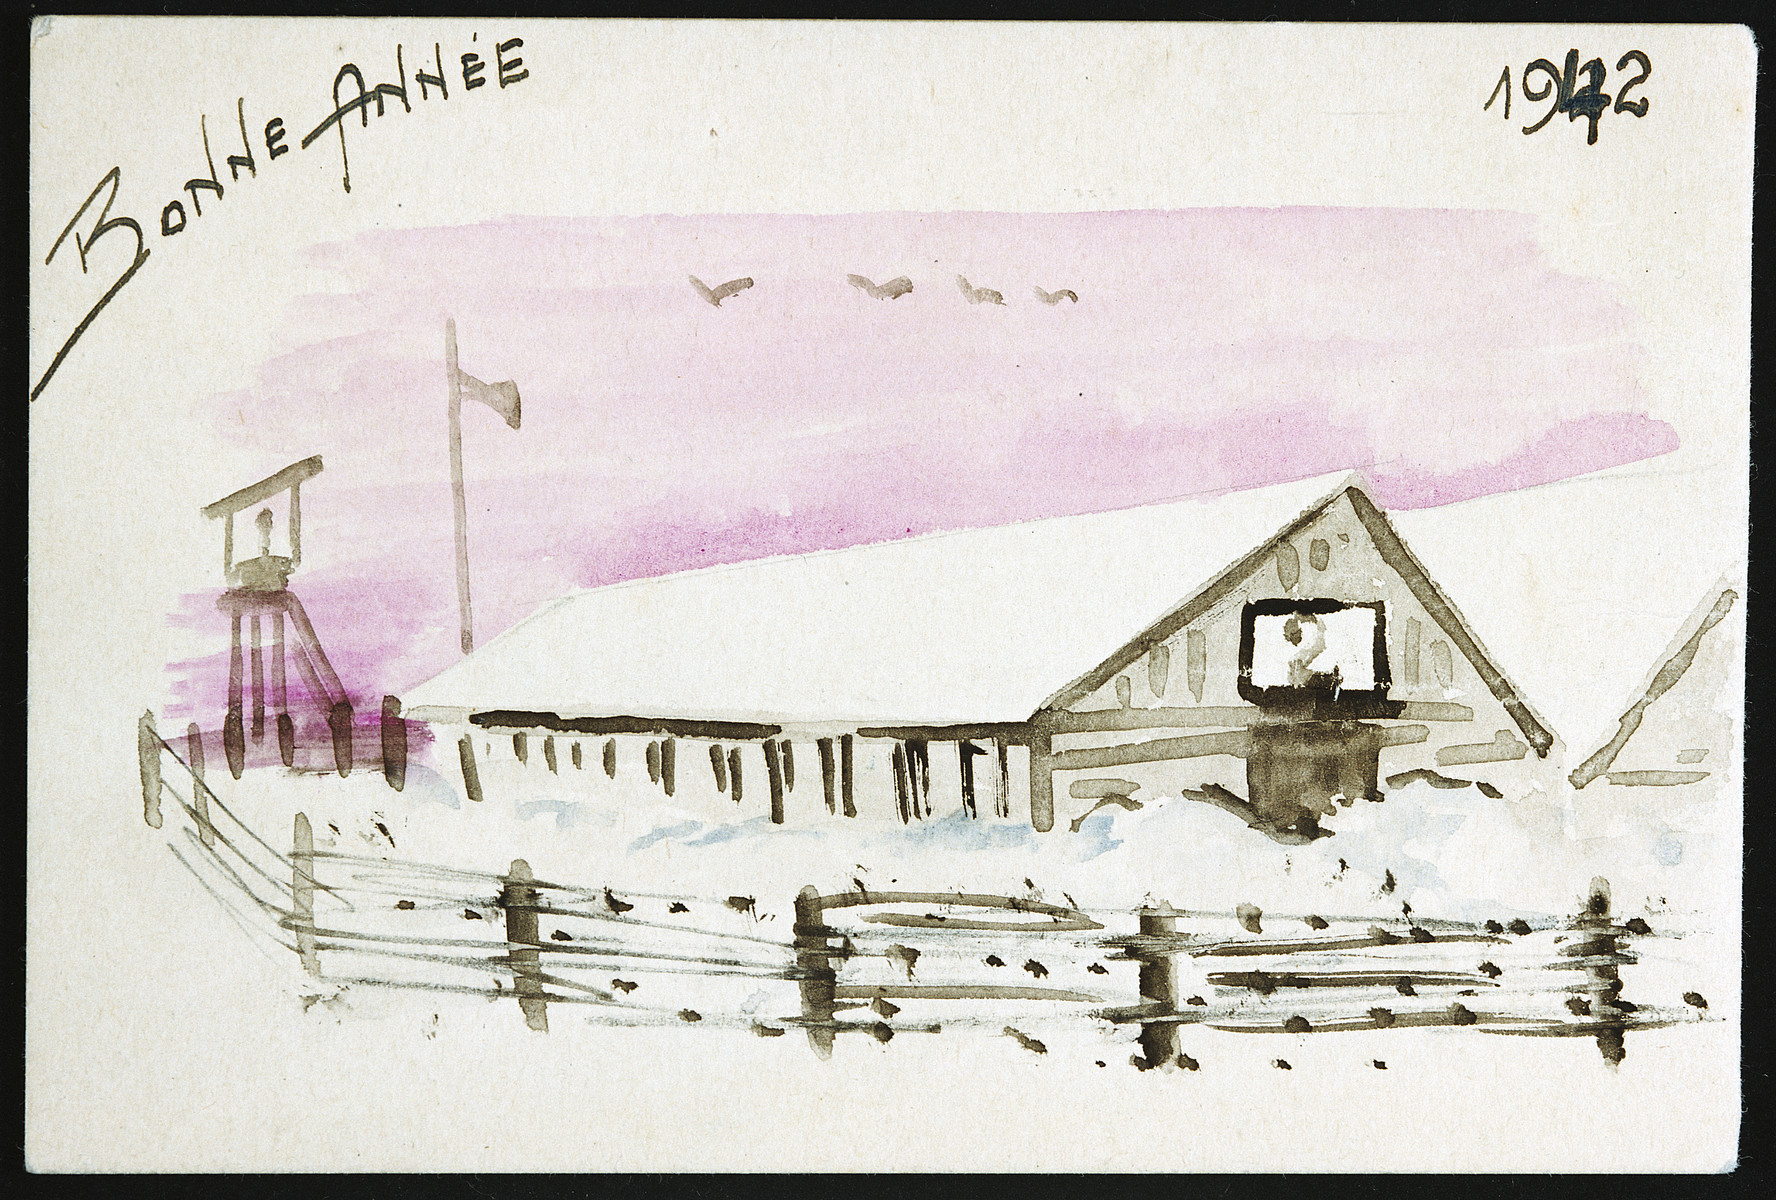 A new year's card decorated with an illustration of a baracks, guard tower and fence sent by a prisoner in the Beaune-la-Rolande internment camp.